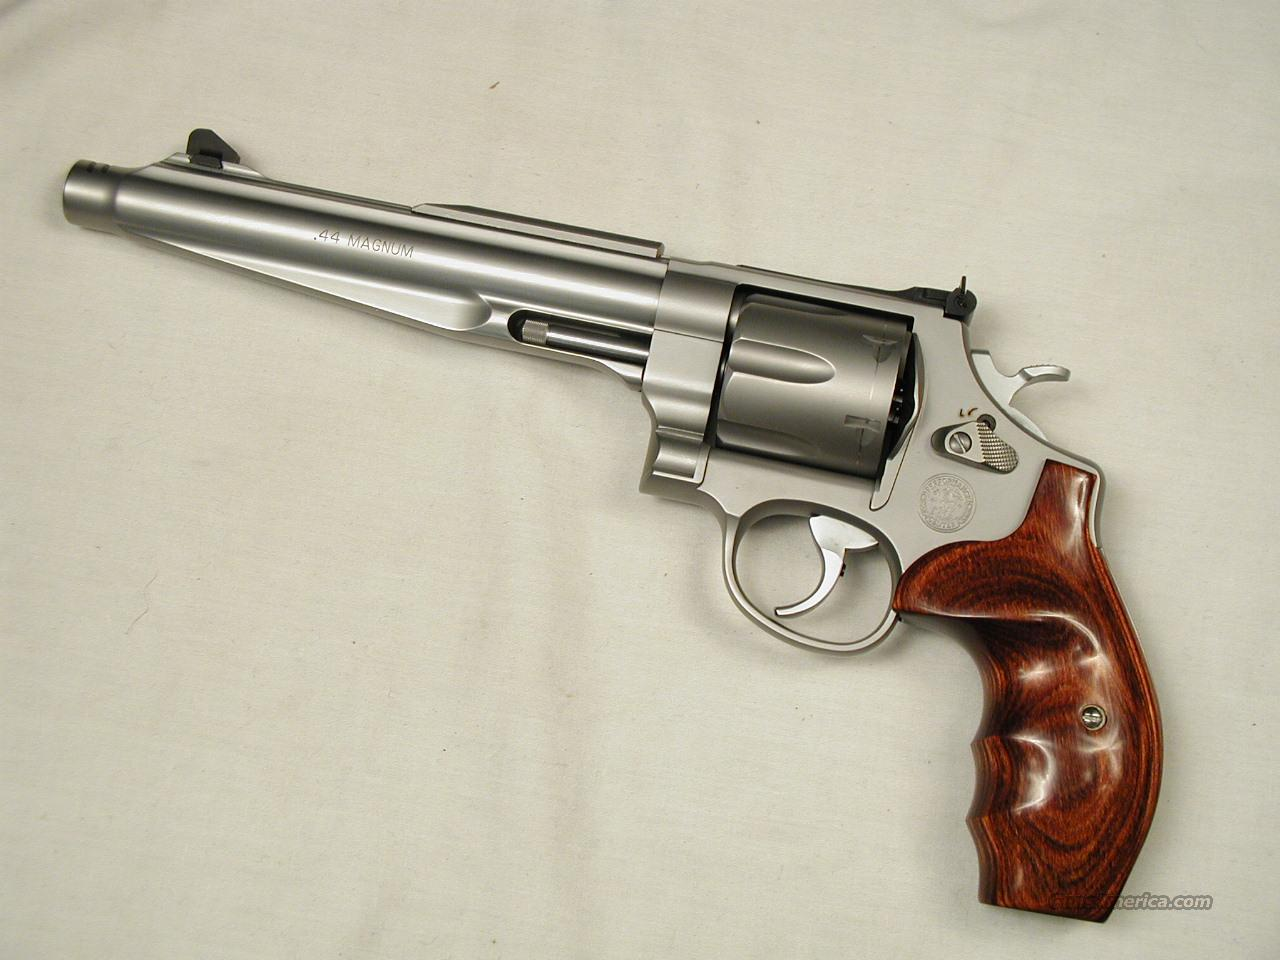 SMITH & WESSON 629  HUNTER DEALER PRICE  Guns > Pistols > Smith & Wesson Revolvers > Performance Center